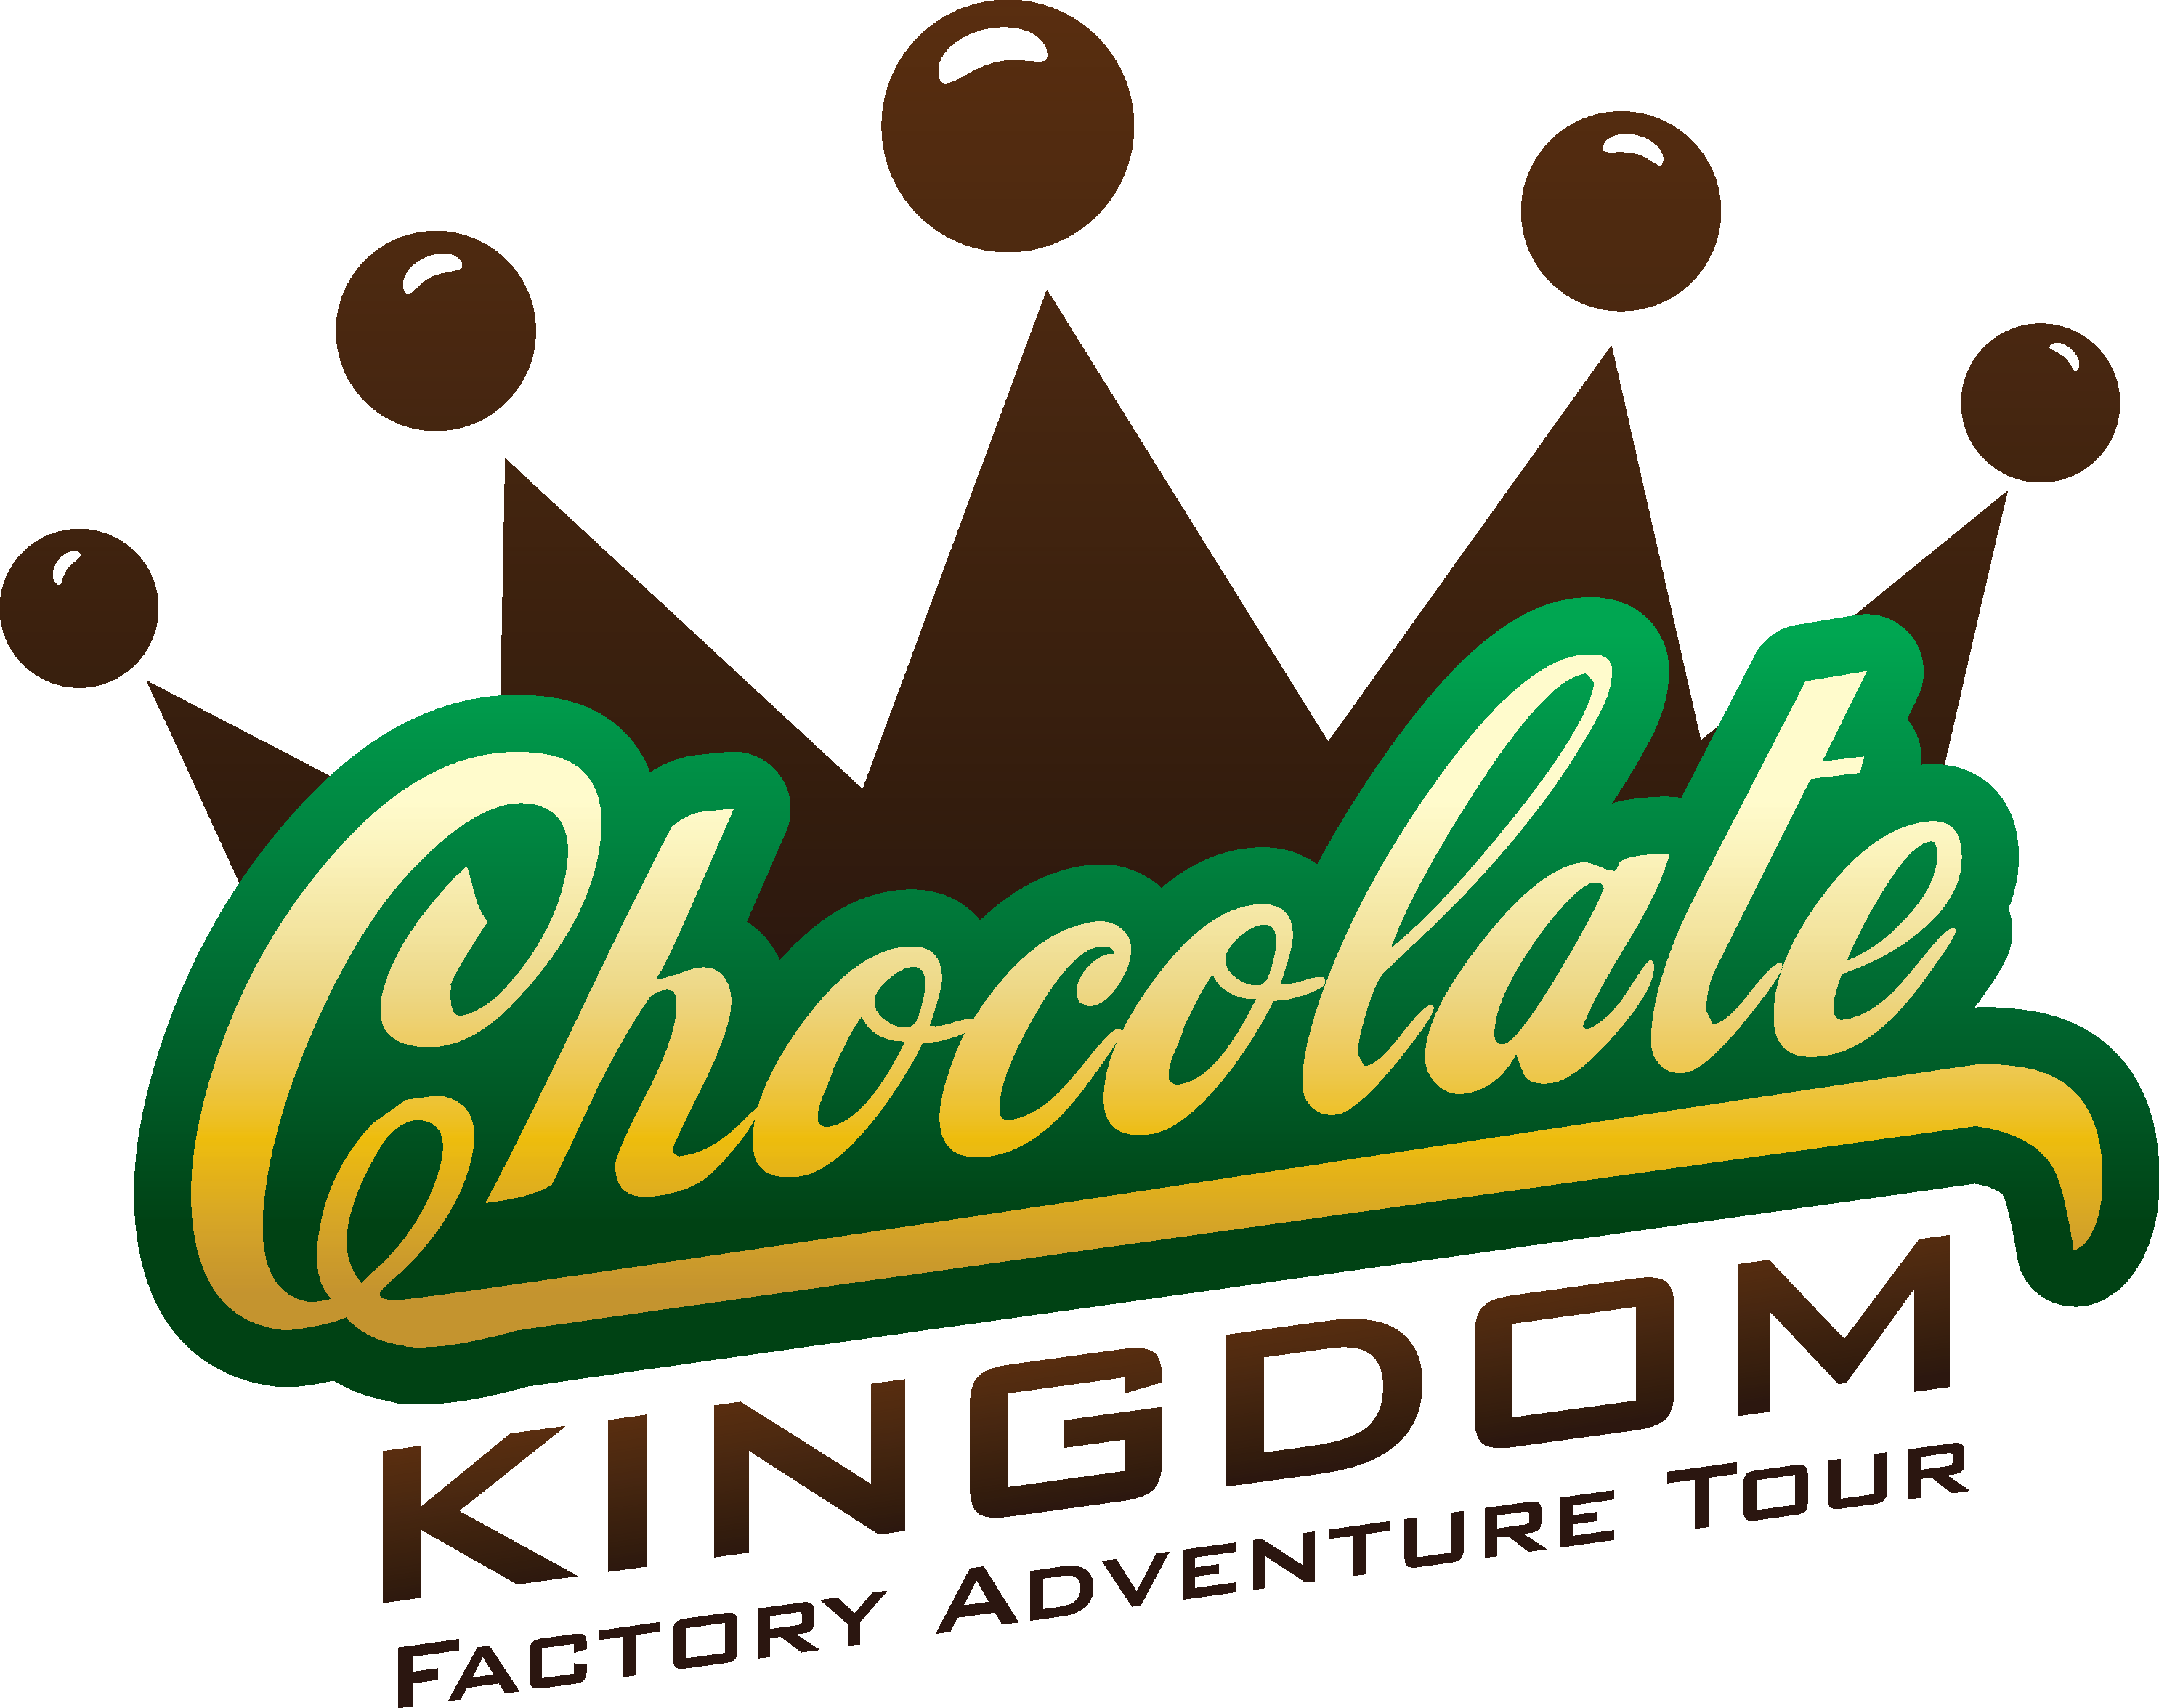 GMF-Chocolate Kingdom